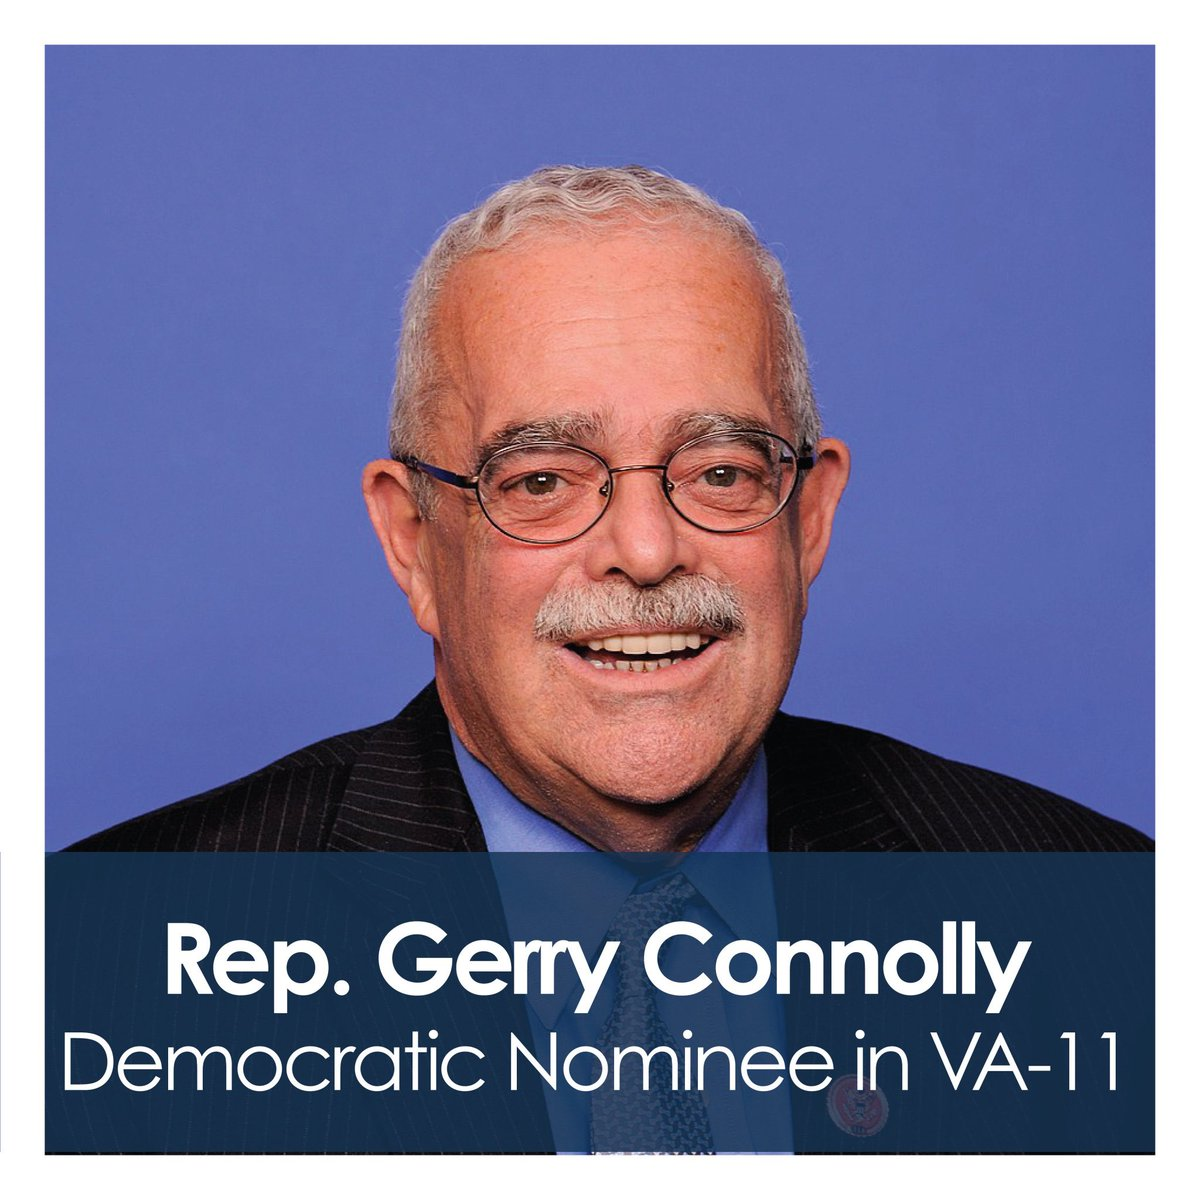 Congratulations @GerryConnolly! gerryconnolly.com